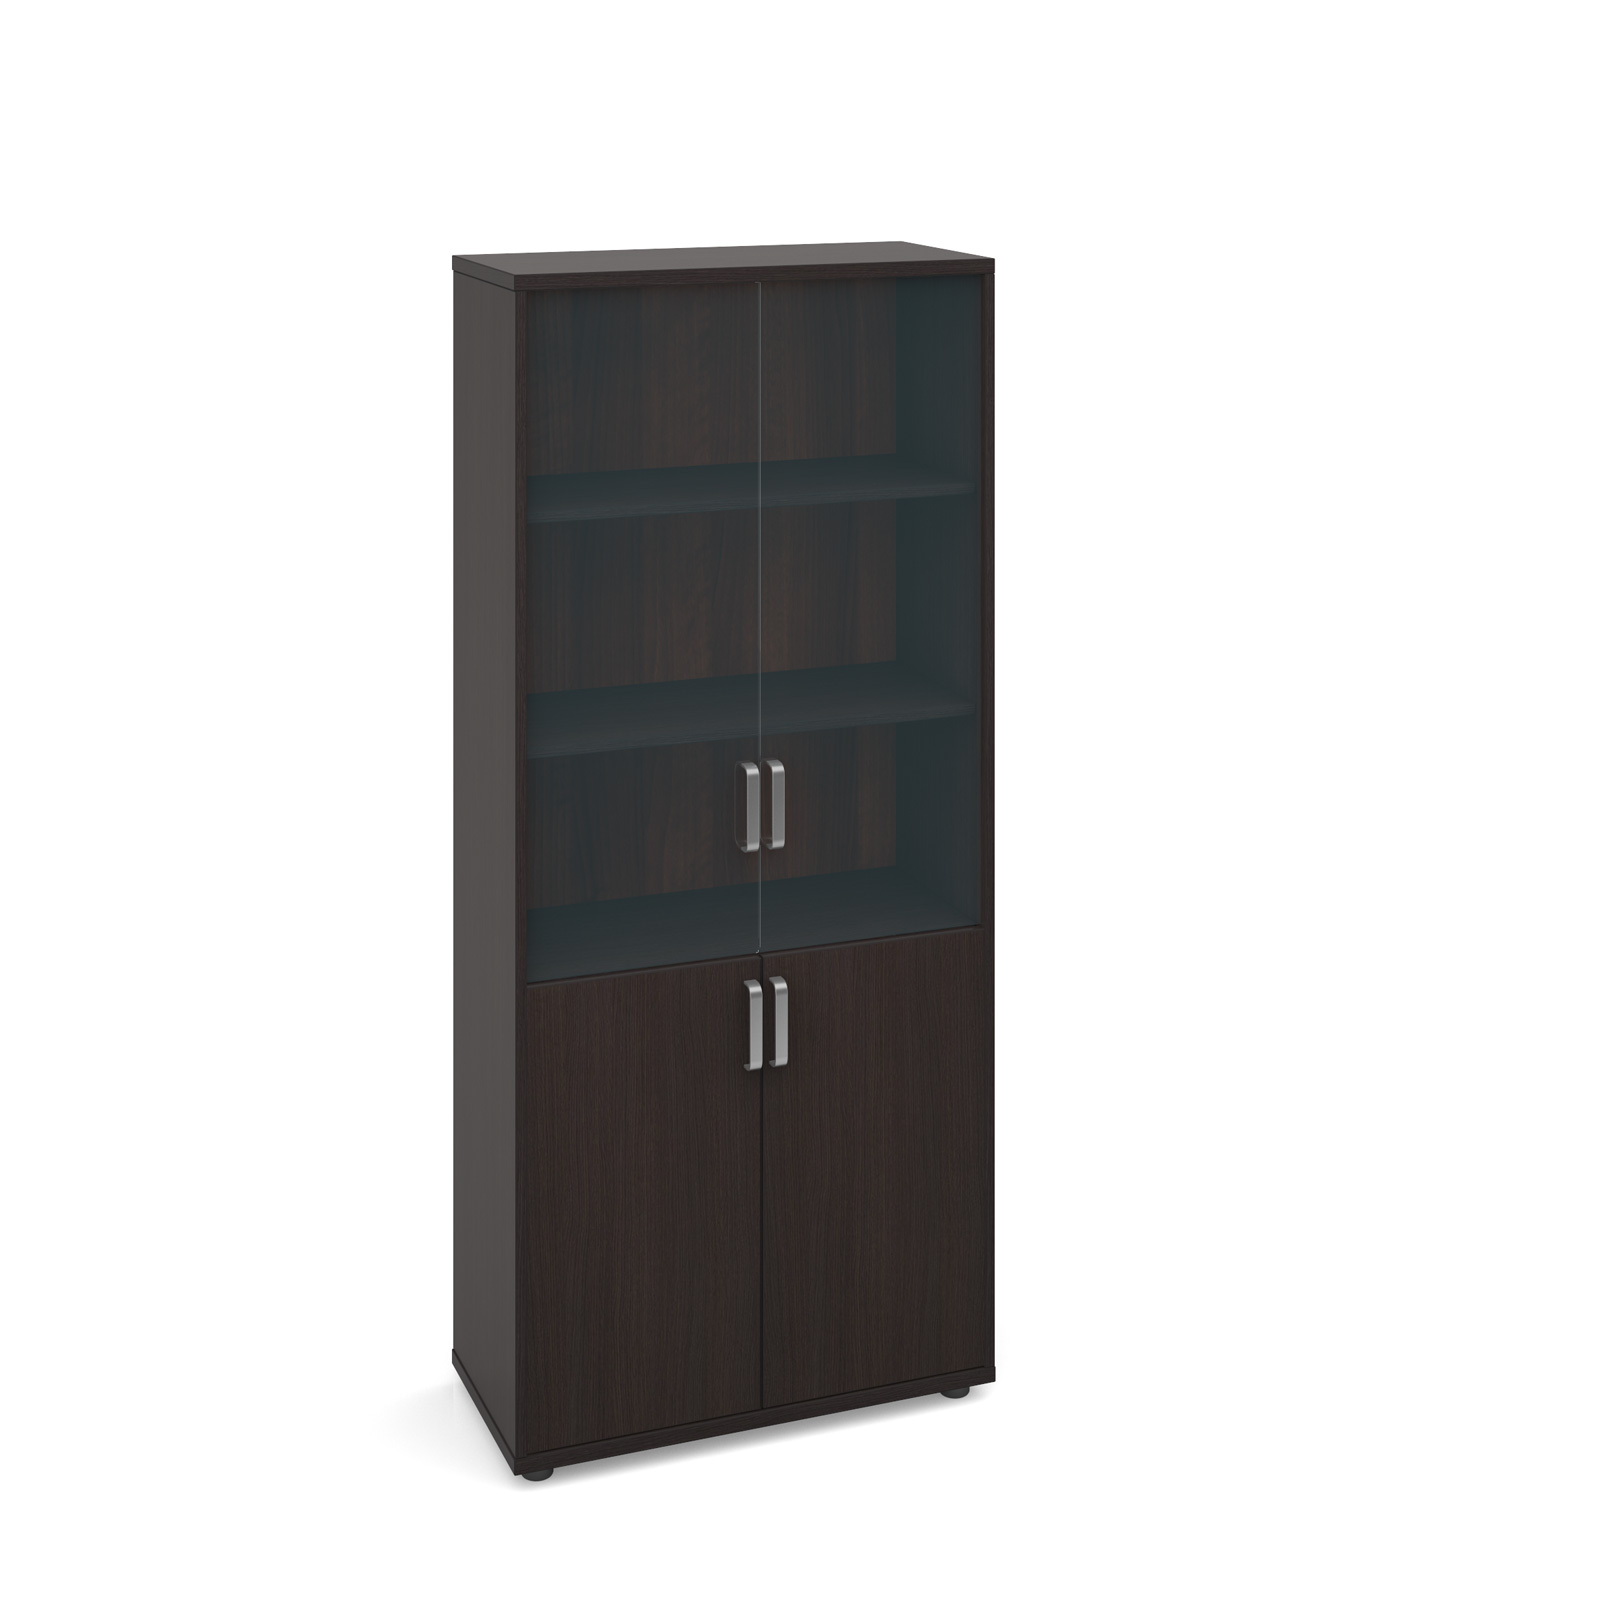 Dams Magnum Executive Tall Cupboard with Glass Doo